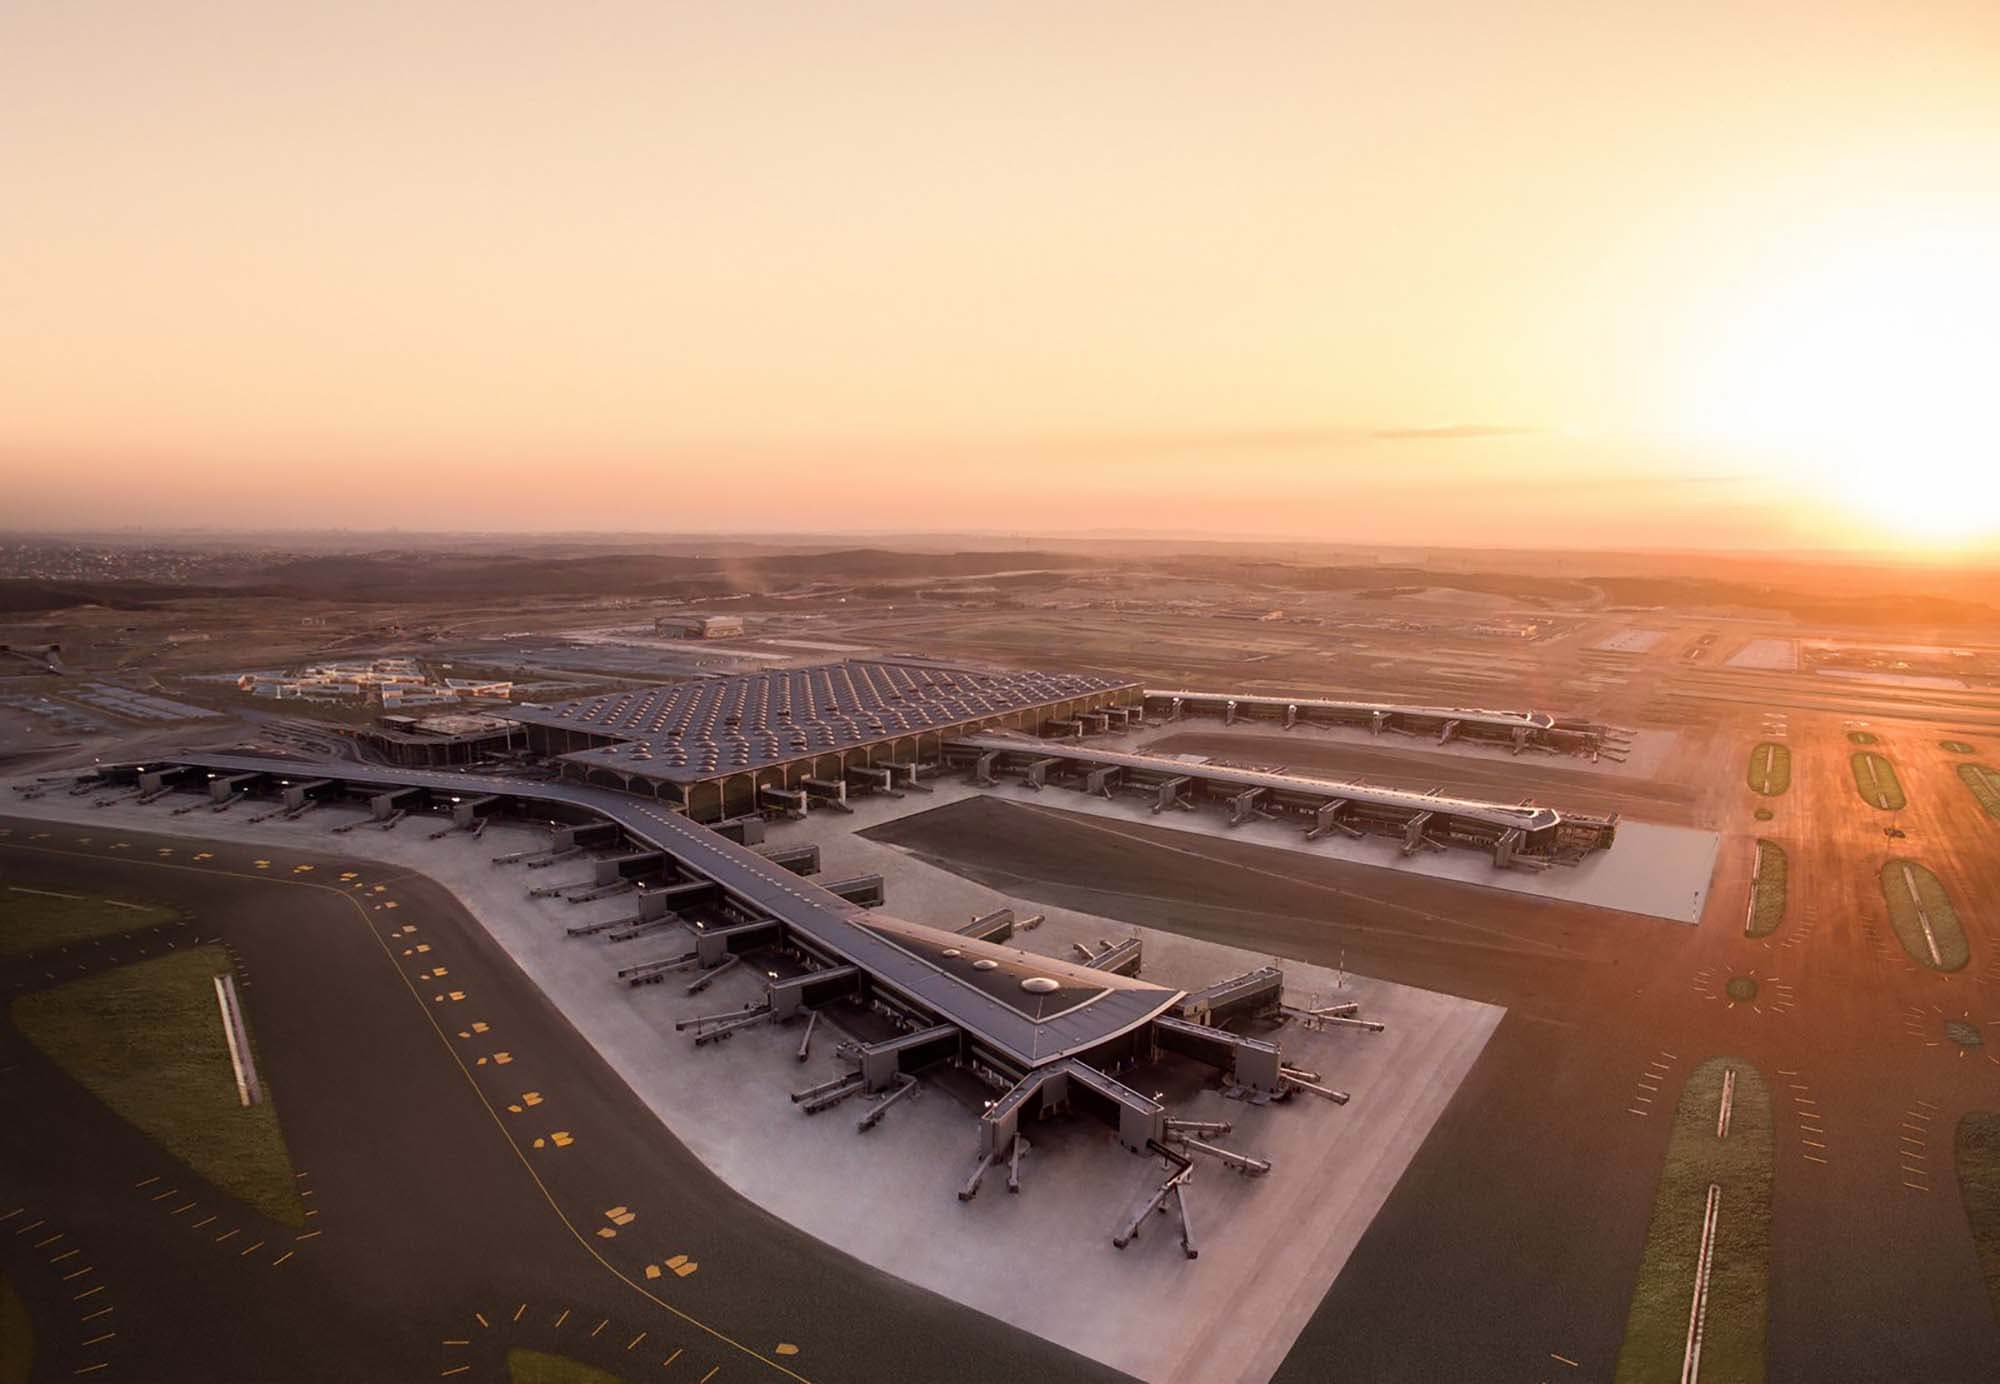 Istanbul Airport - drone view